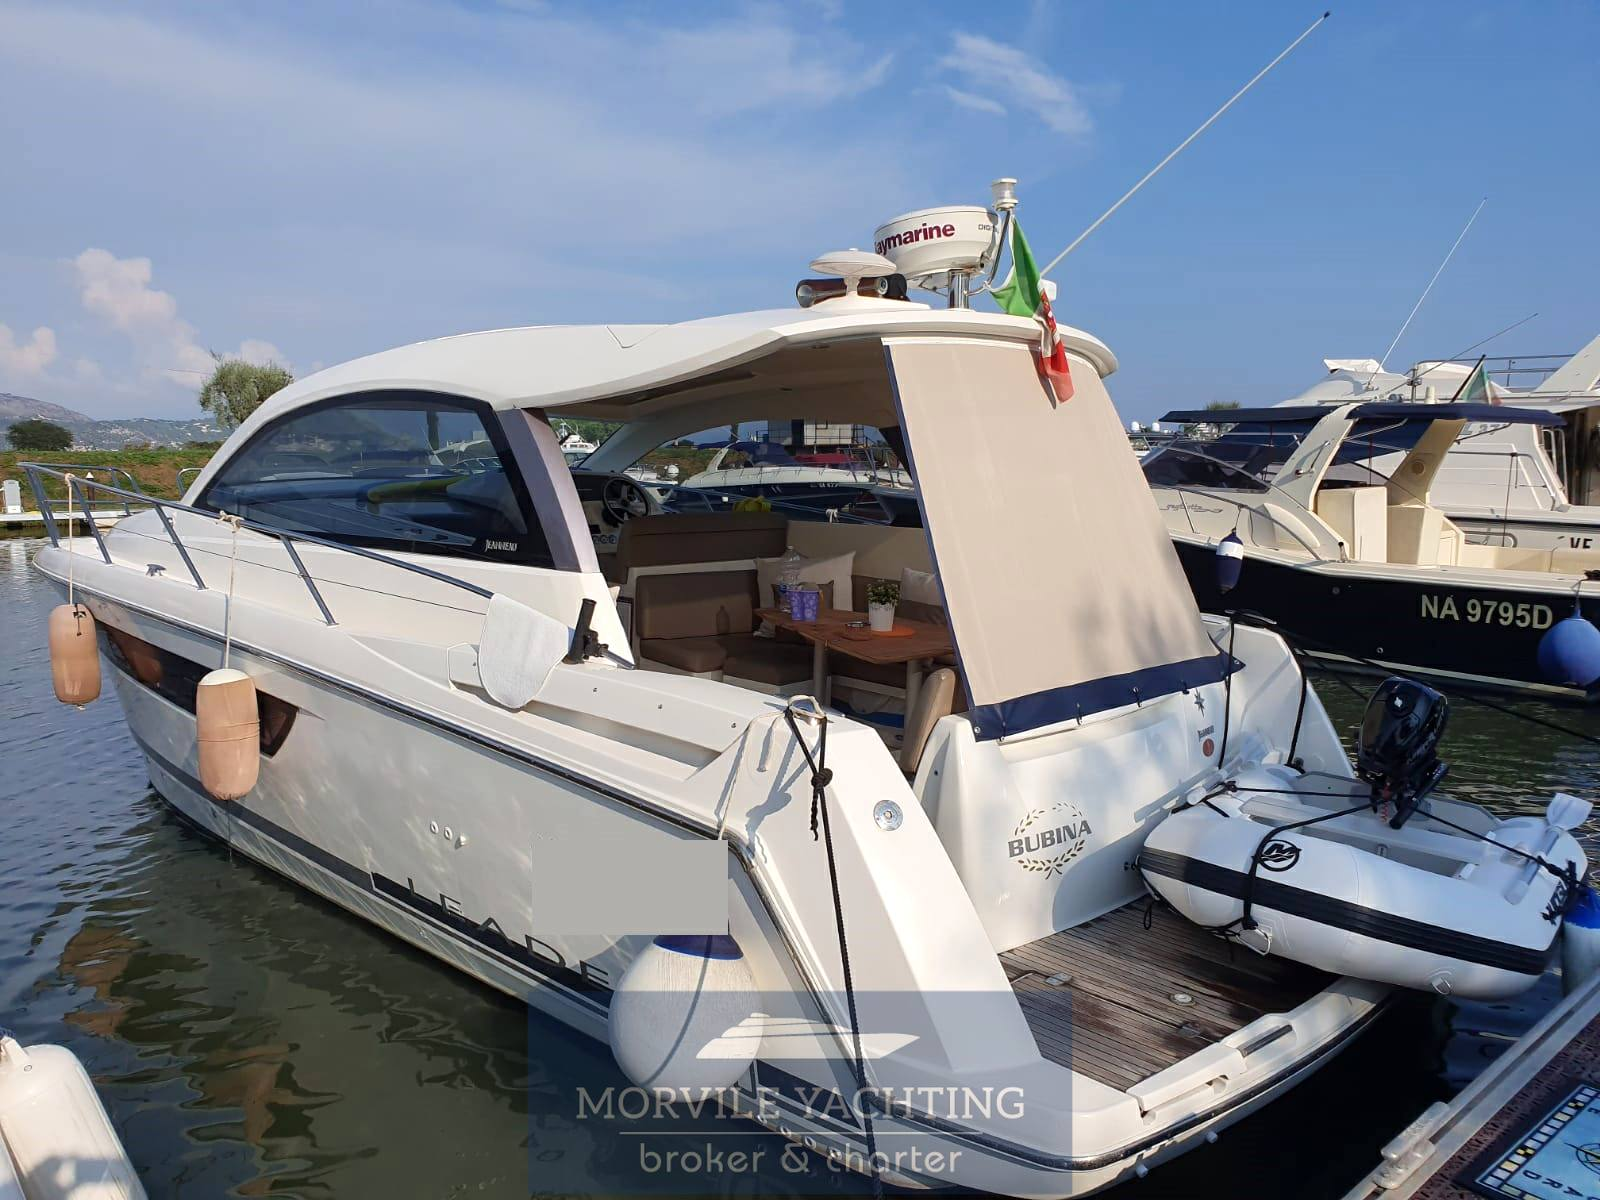 Jeanneau Leader 10 Motor boat used for sale